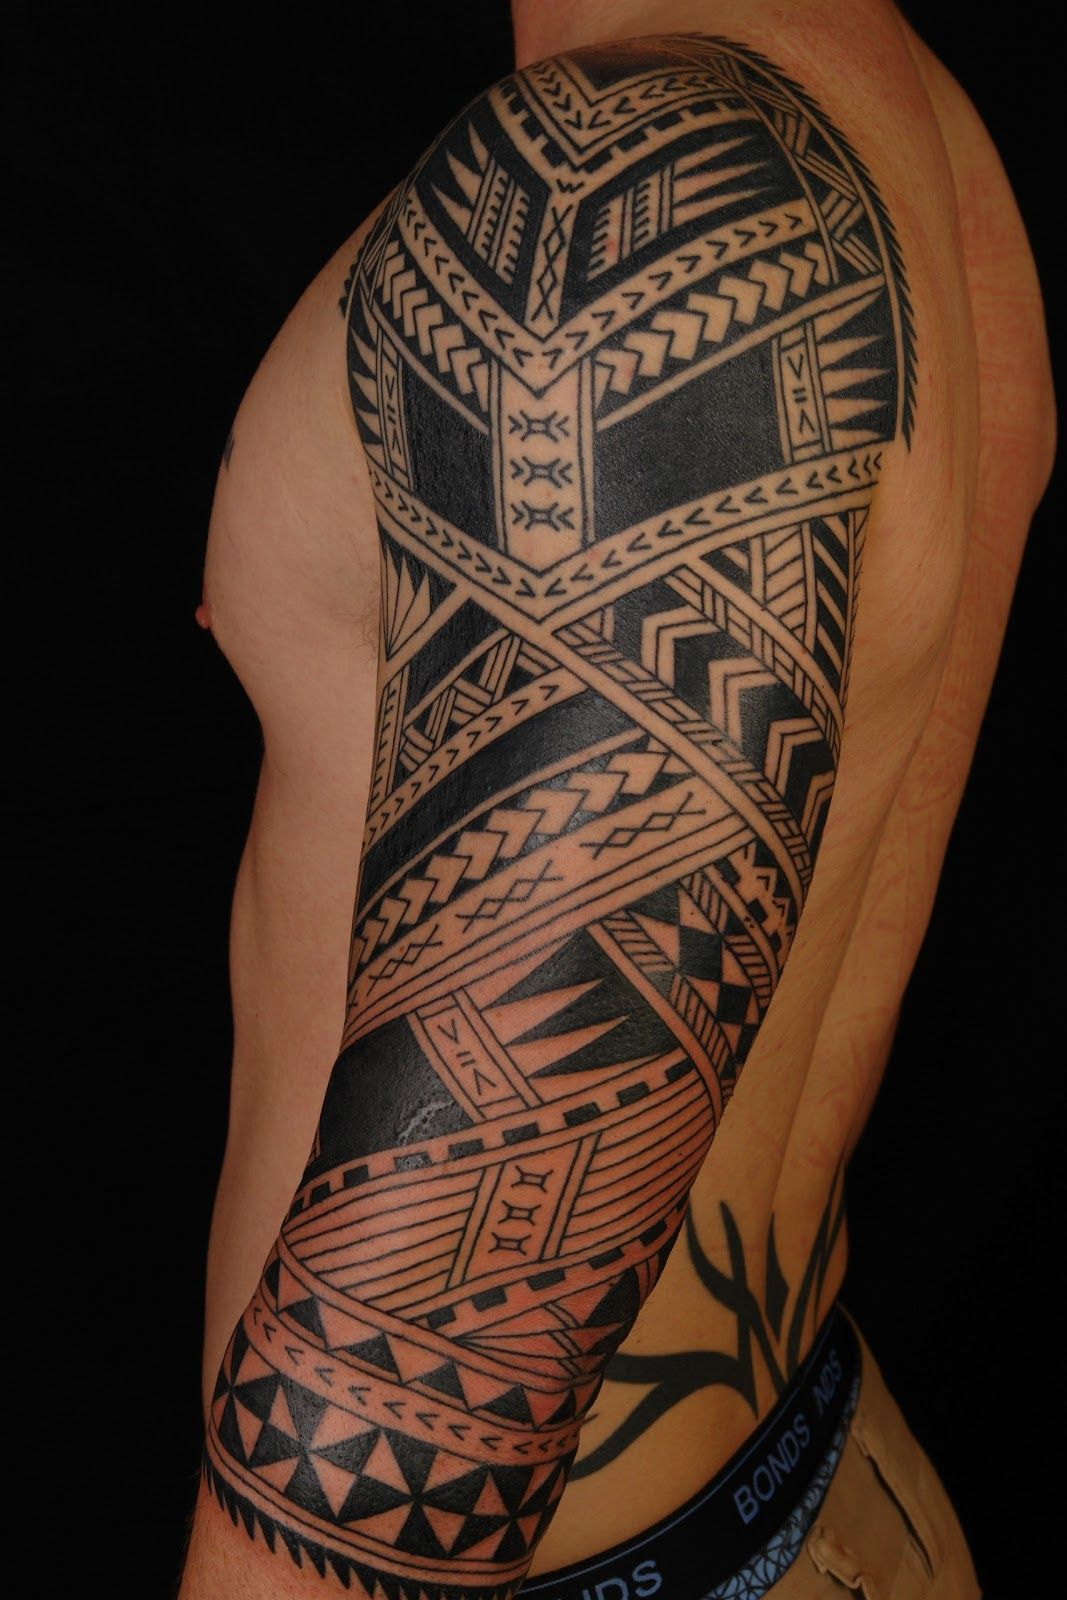 Shane tattoos polynesian 3 4 sleeve 3 4 sleeve tattoos for 3 4 sleeve tattoo